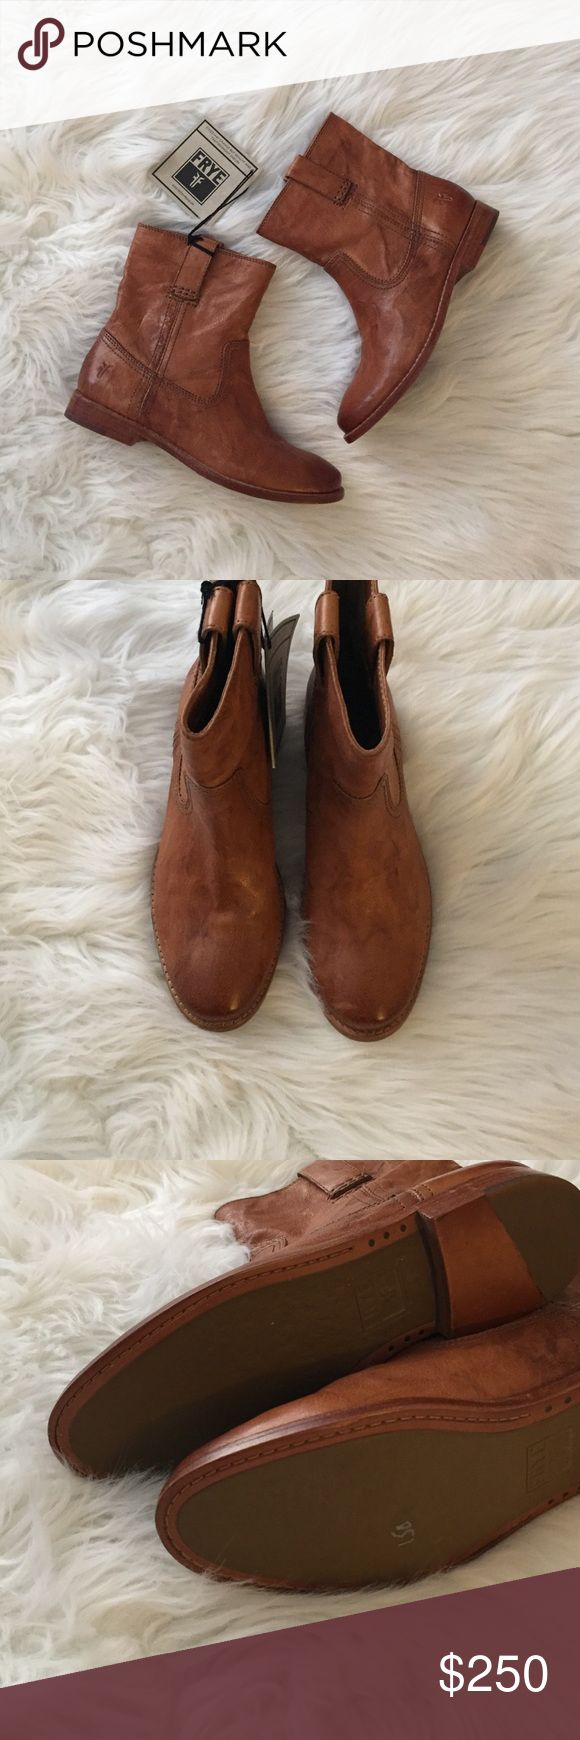 Frye Ankle Boots Gorgeous boots!   » Offers through the offer button  » Bundling discounts available  » No trades » NWT Frye Shoes Ankle Boots & Booties